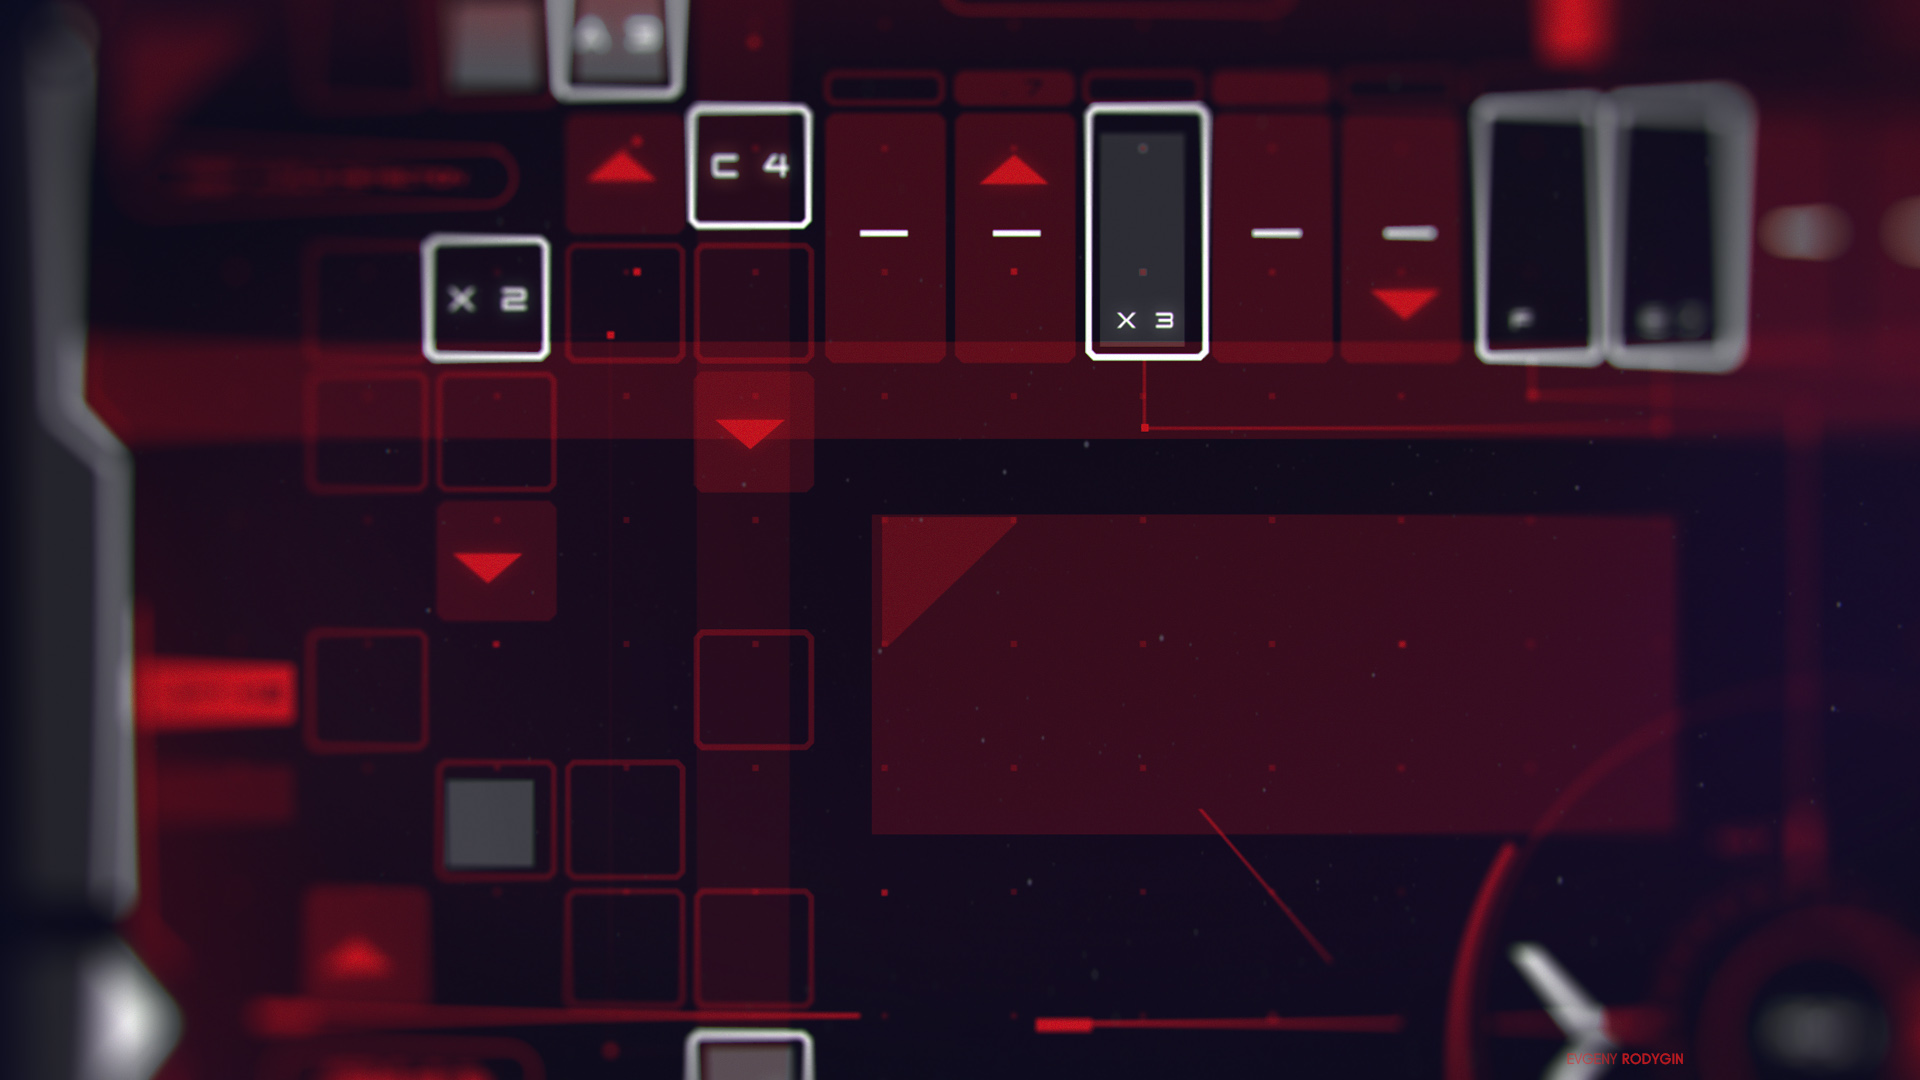 Control Screen - Sci-Fi User Interface concept